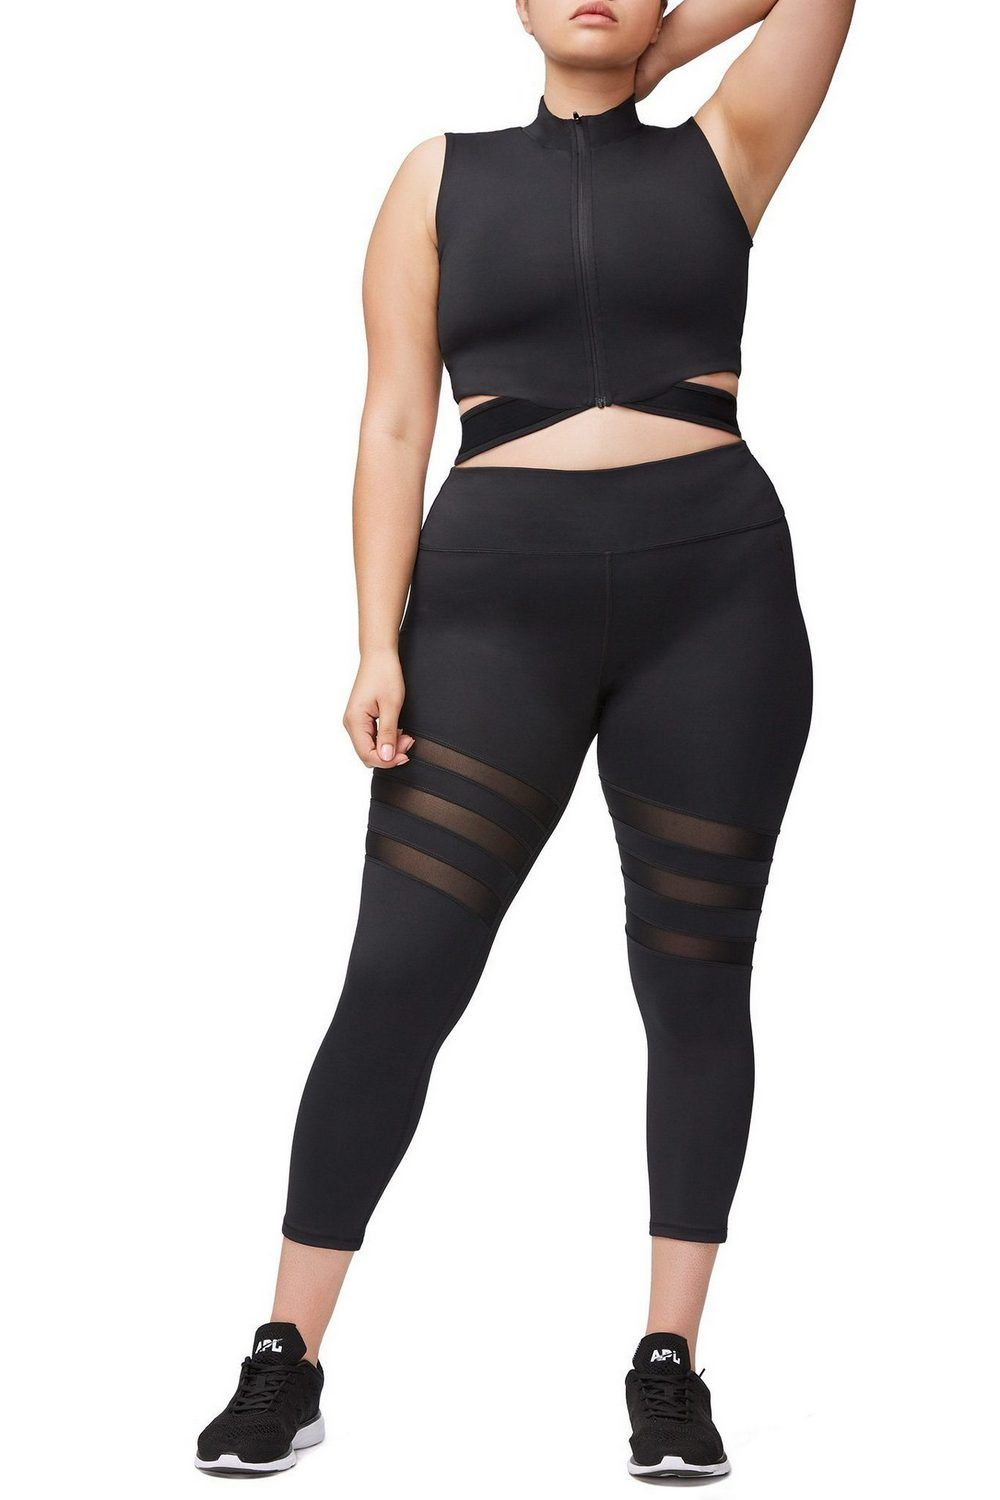 d9108af07ff5c Get Your Workout On with Good American Activewear ALSO Available In Plus  Sizes! https